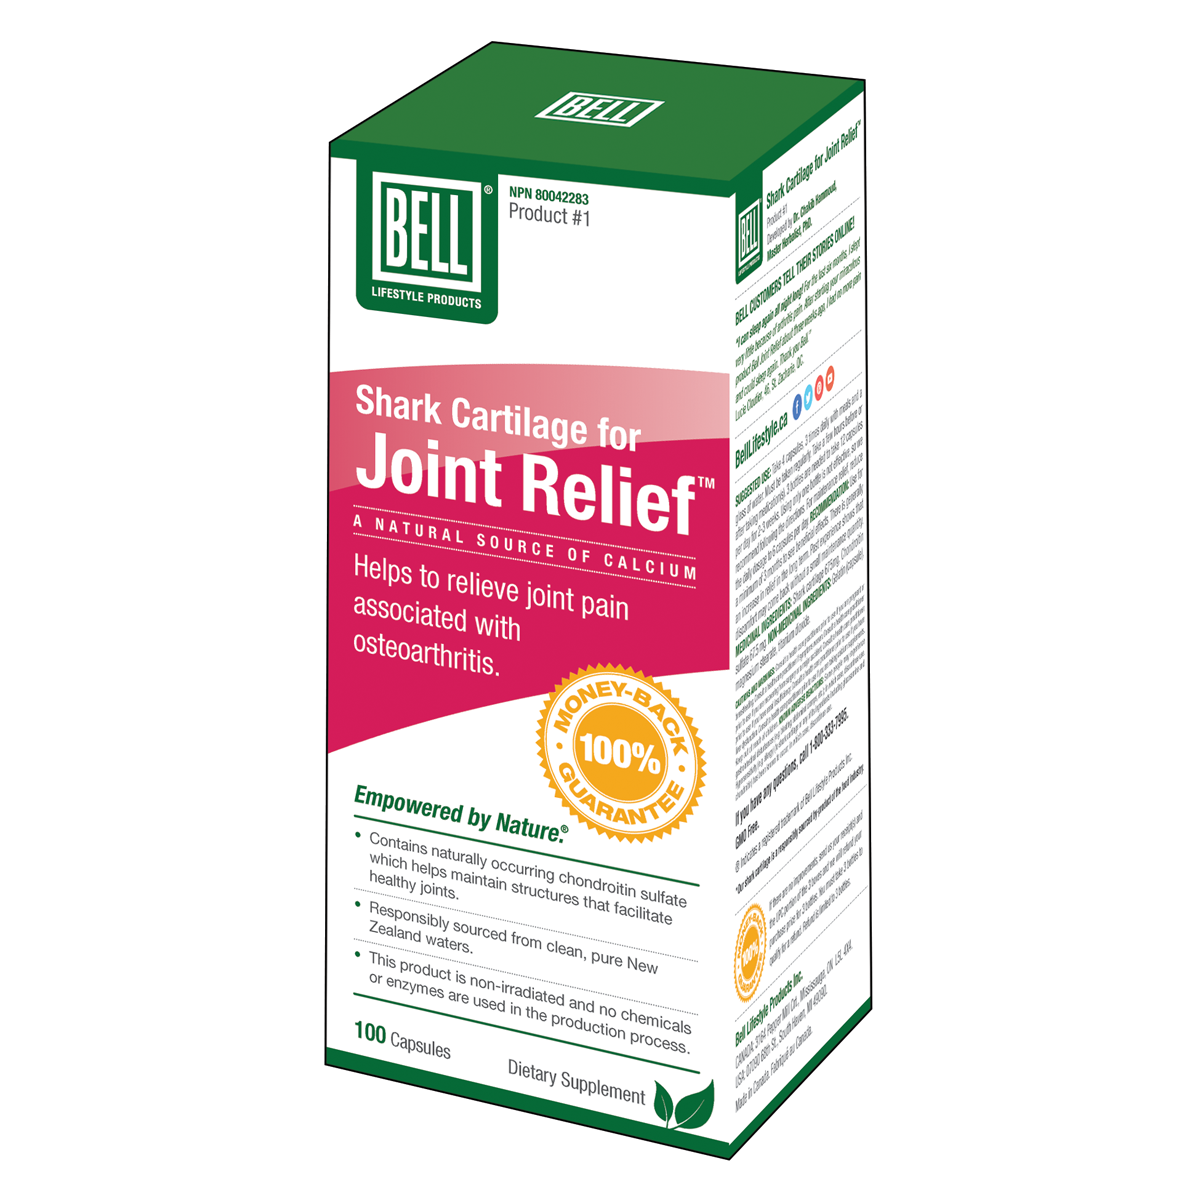 Bell - Shark Cartilage For Joint Relief - 100 Caps